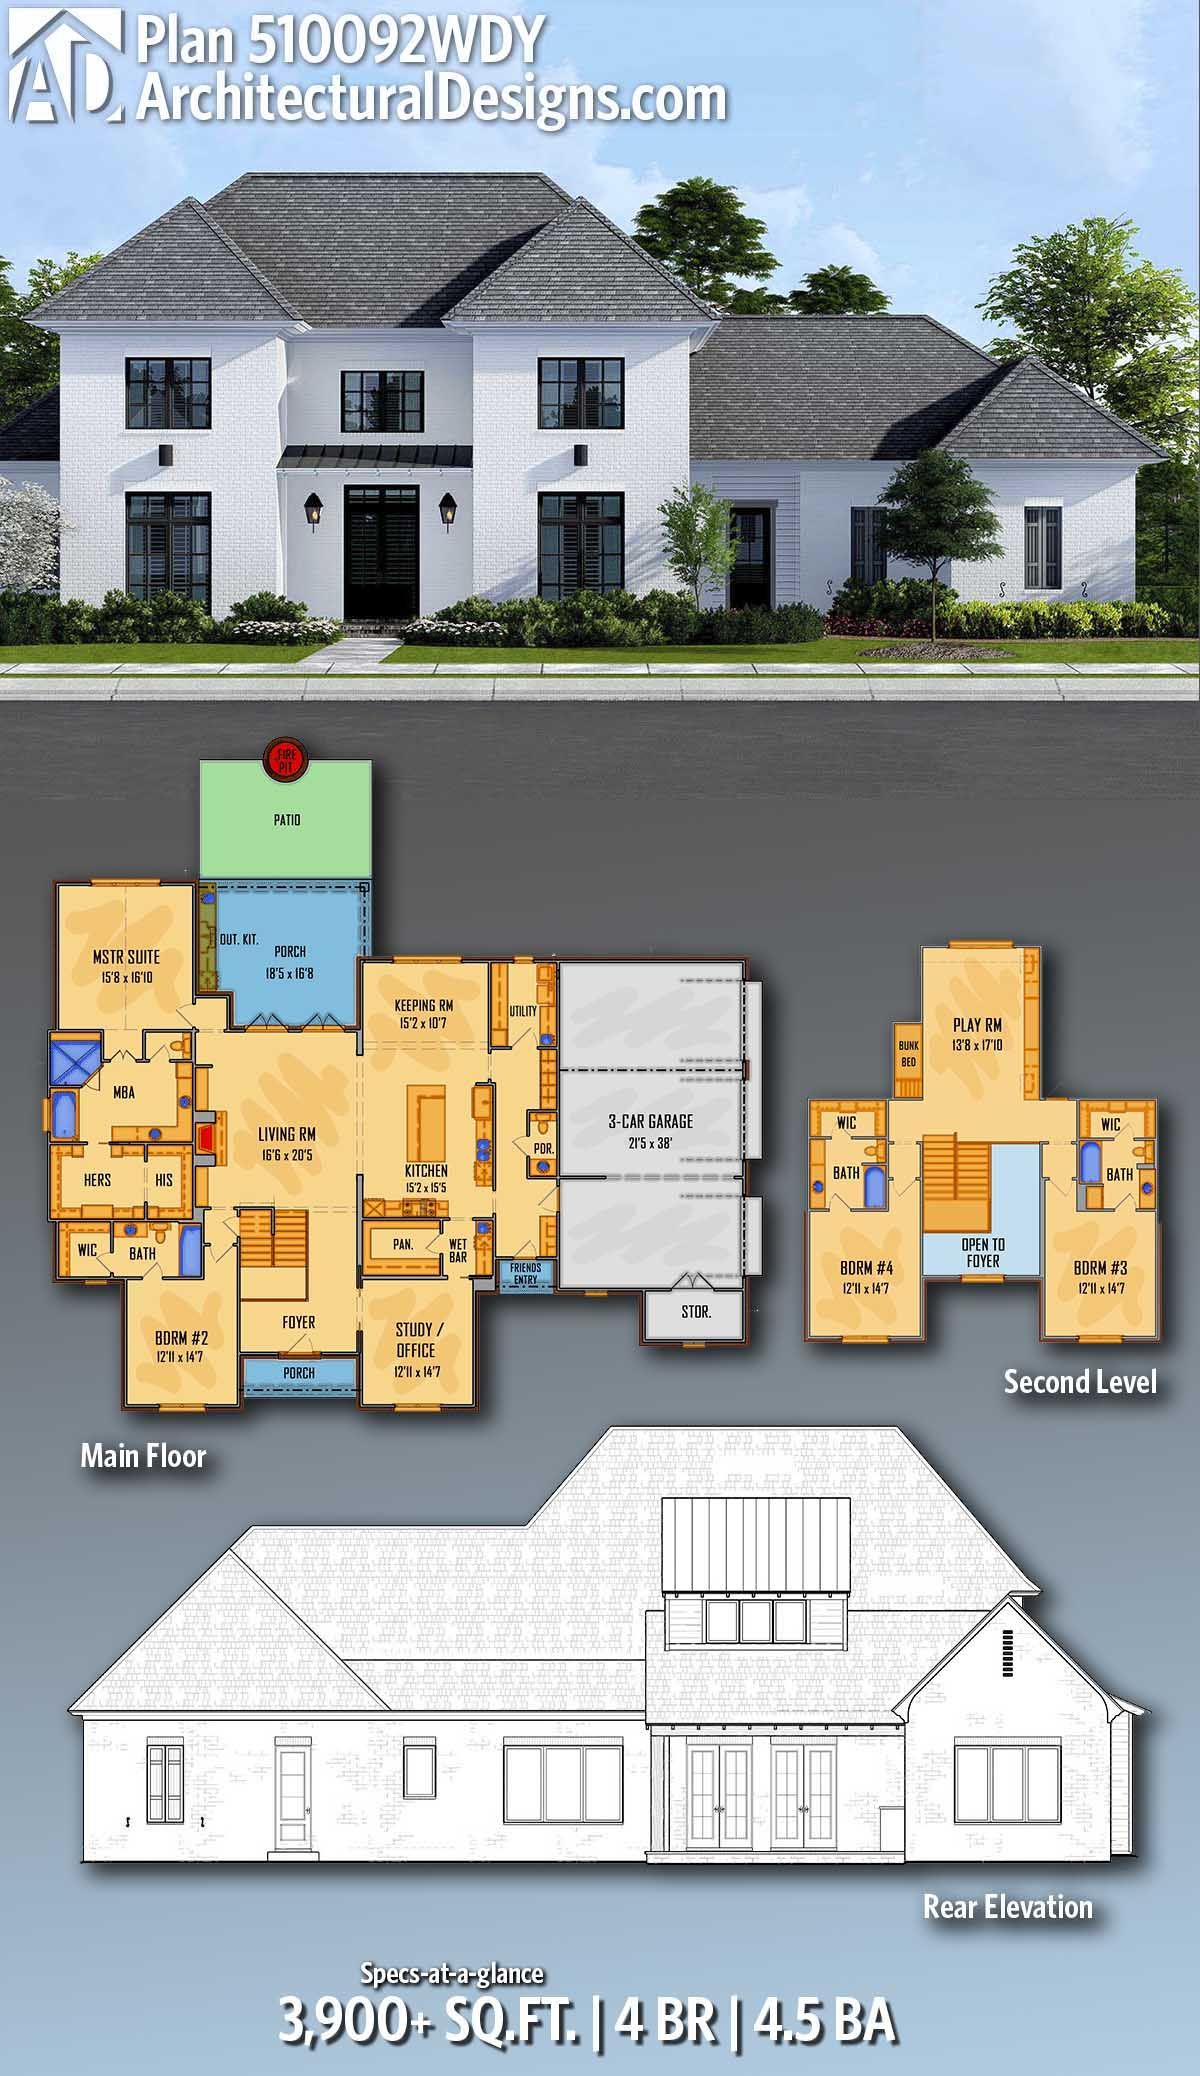 Plan 510092wdy Two Story Southern House Plan With Home Office Southern House Plan Southern House Plans House Plans